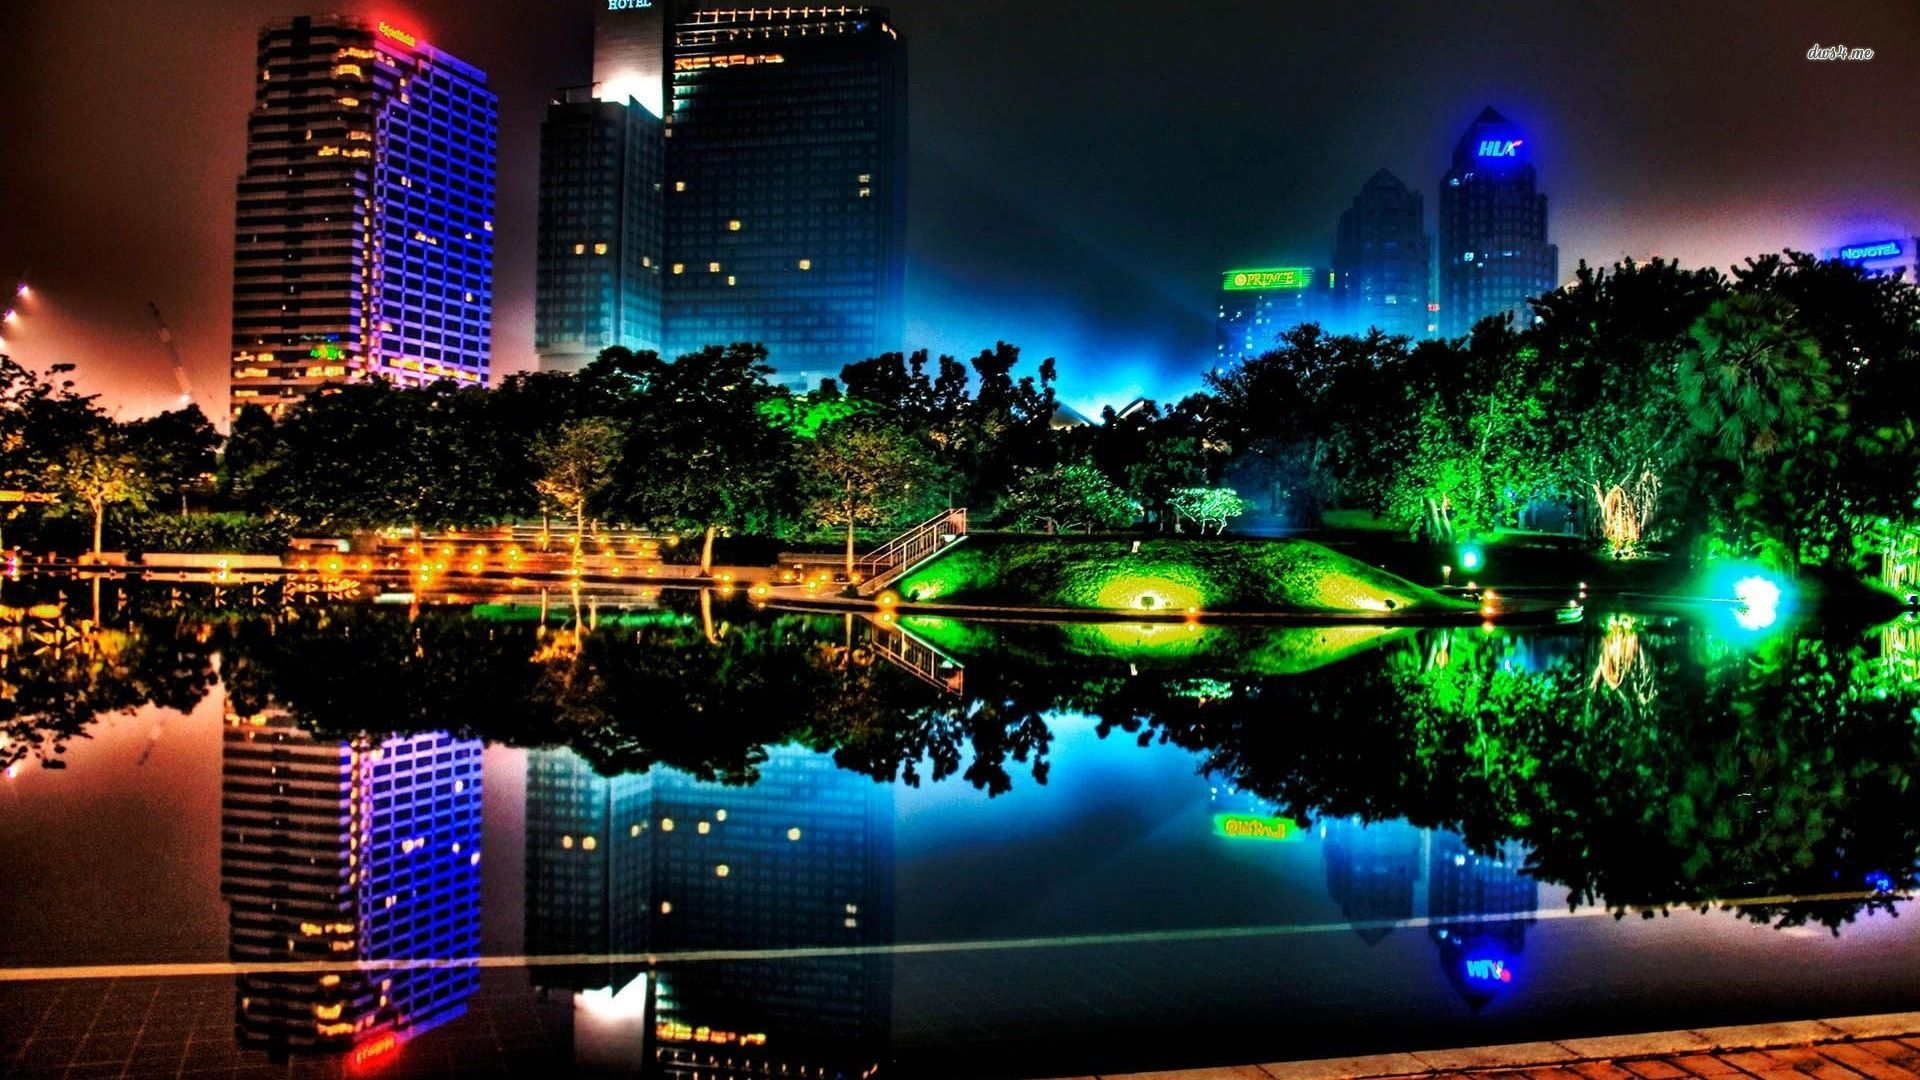 Digital City Wallpapers Top Free Digital City Backgrounds